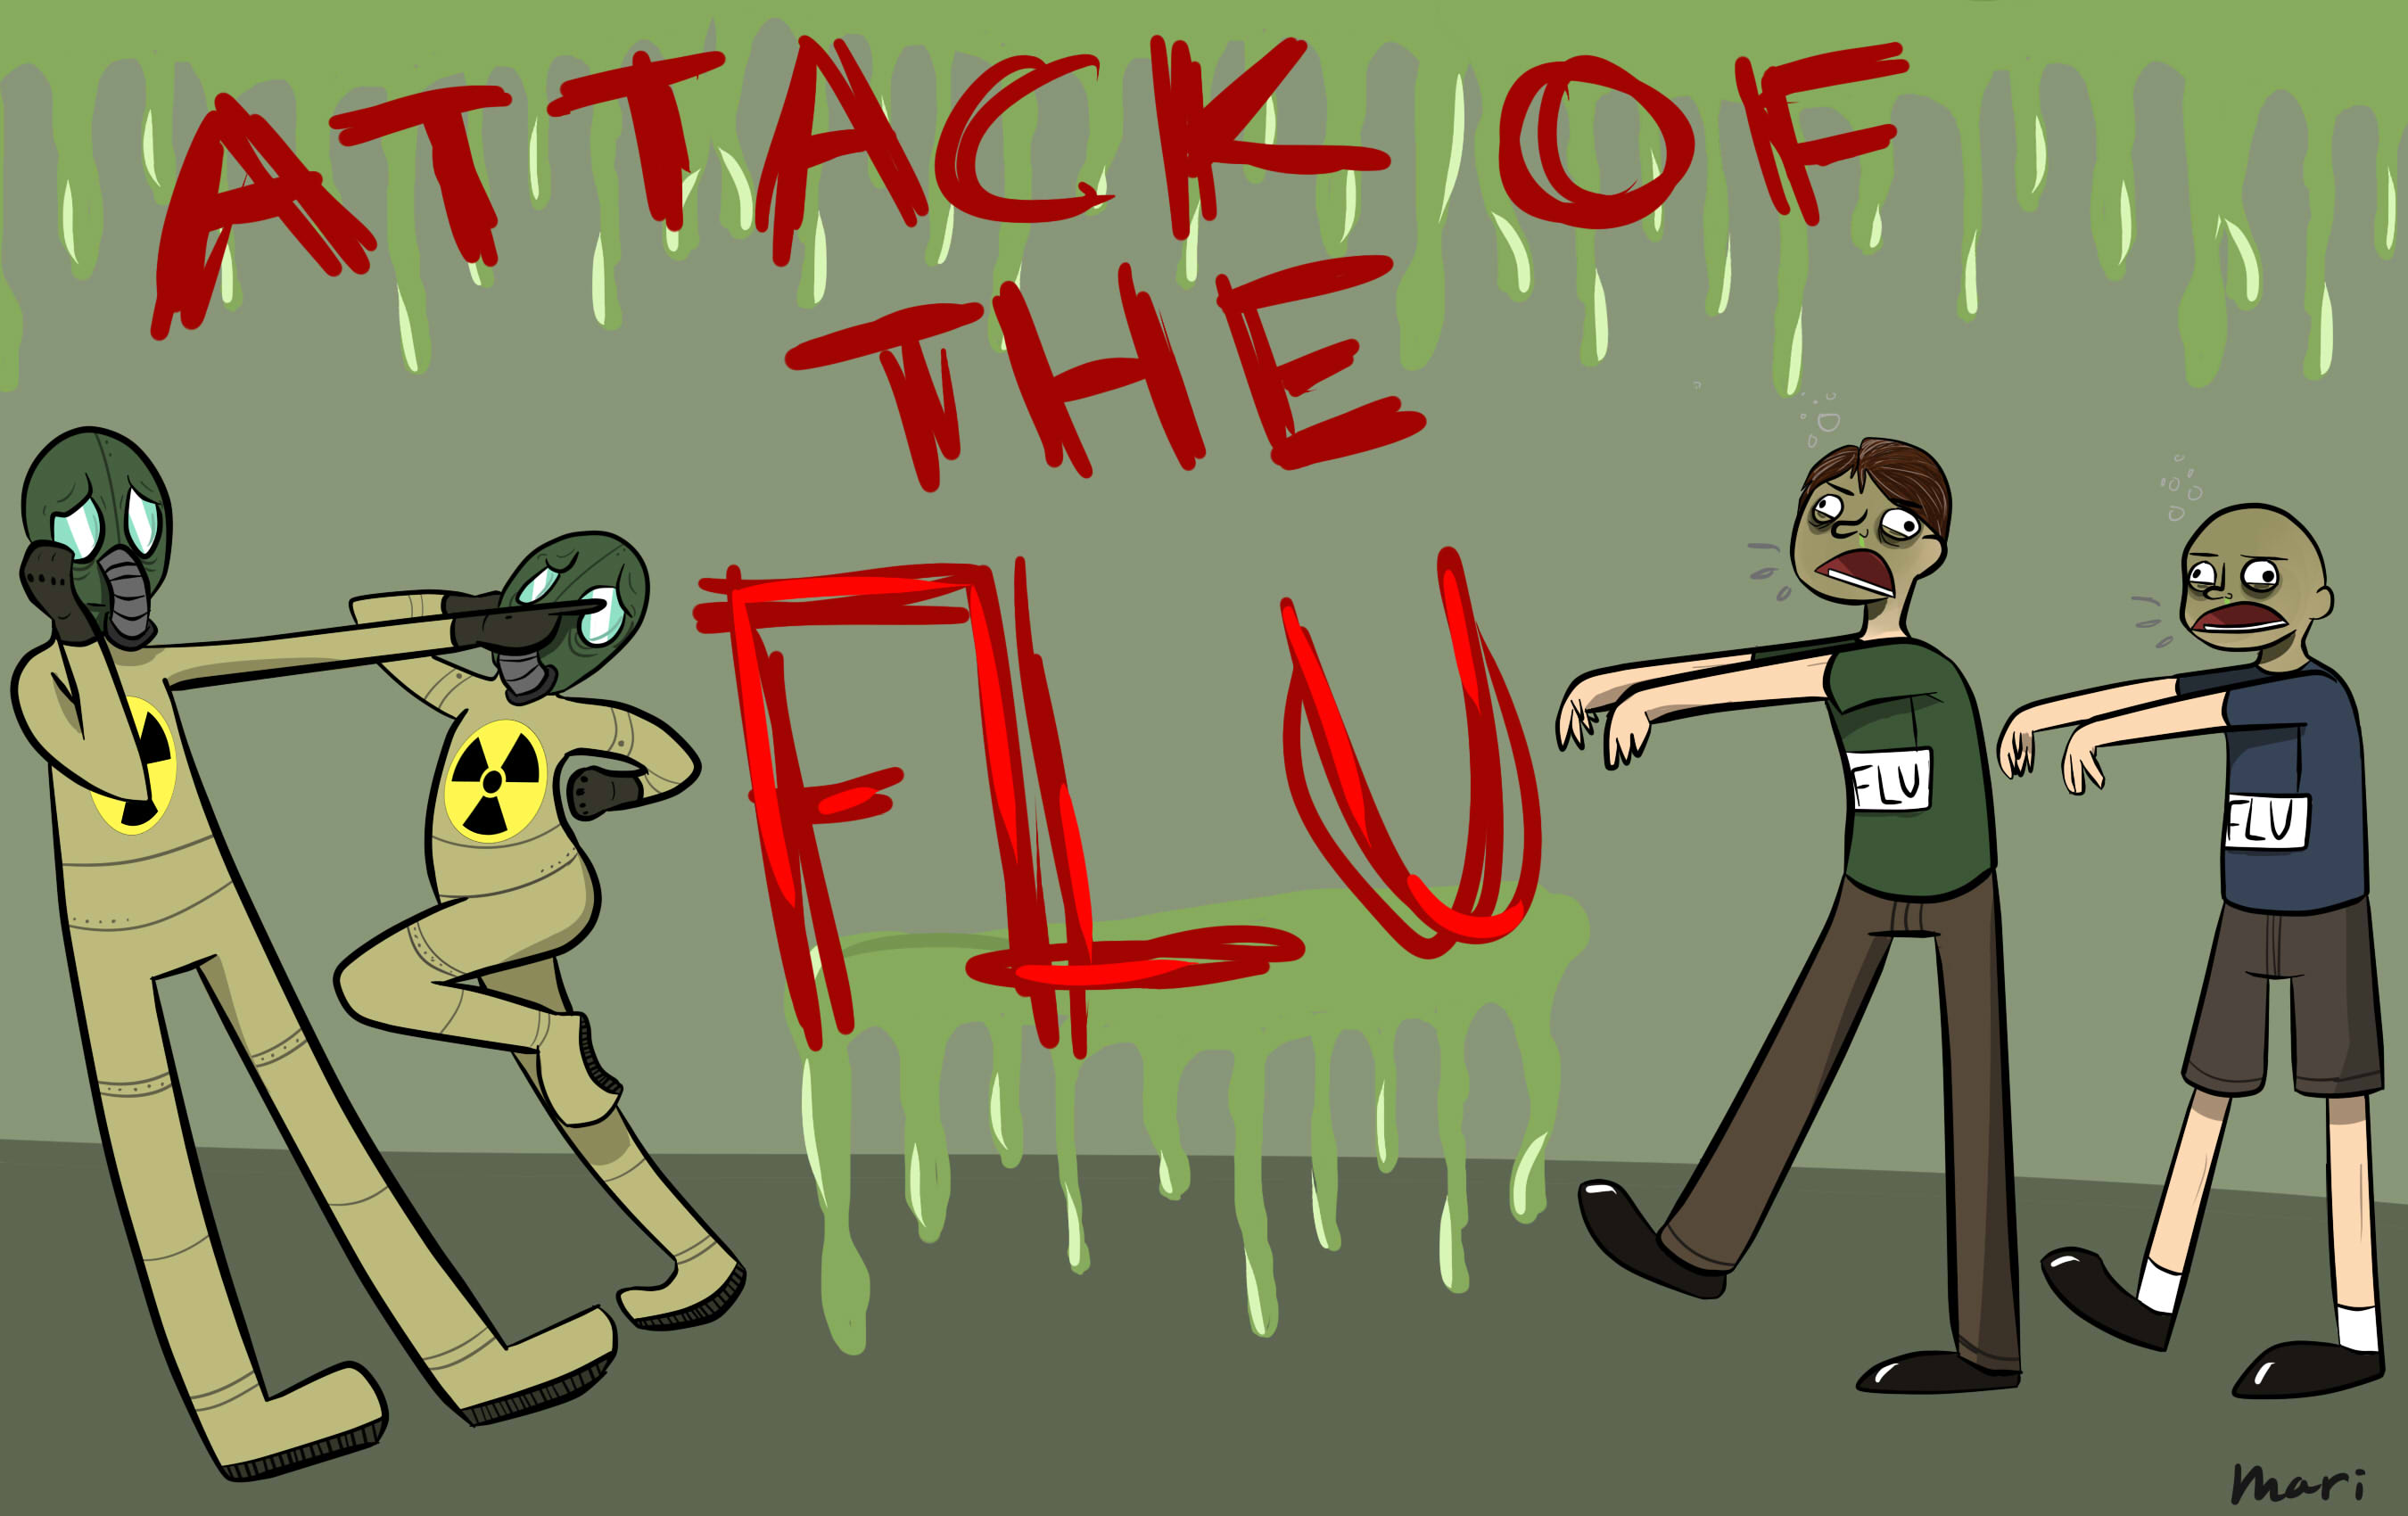 https://i1.wp.com/newspaper.neisd.net/macarthur/files/2013/02/Flu-season-cartoon-27yig39.jpg